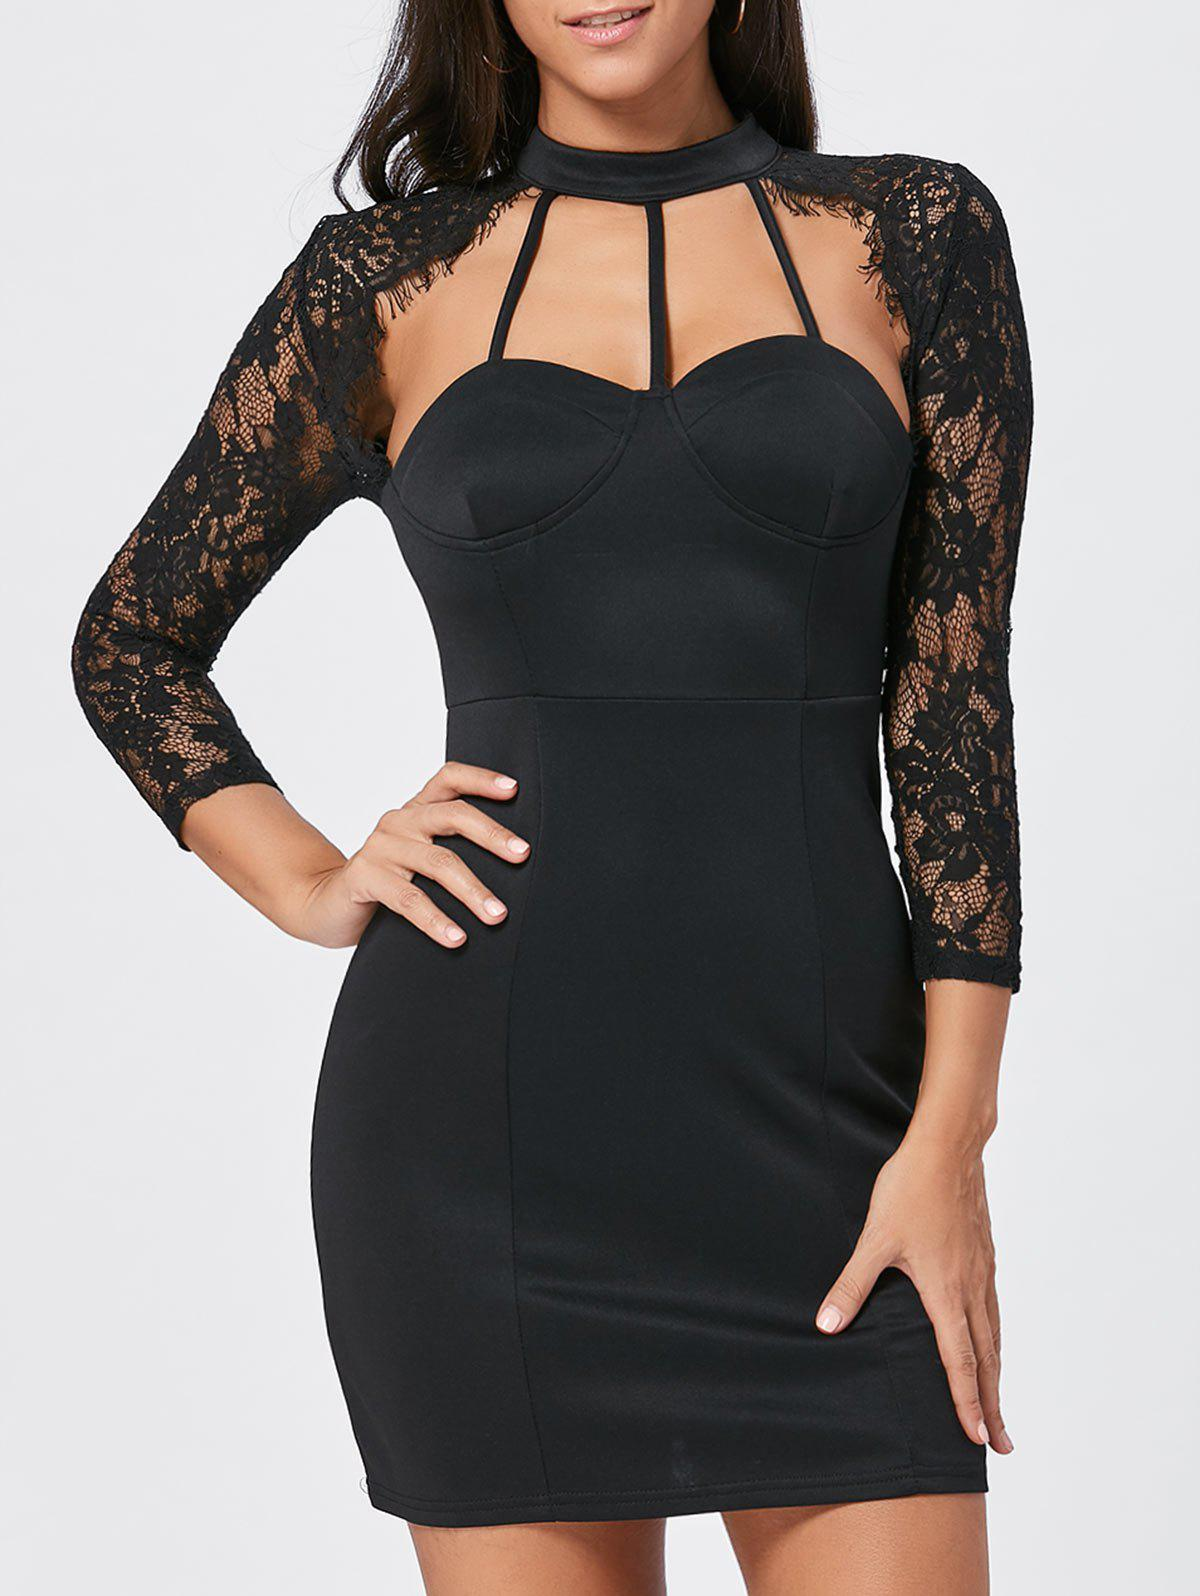 Lace Panel Cut Out Bodycon Dress - BLACK M